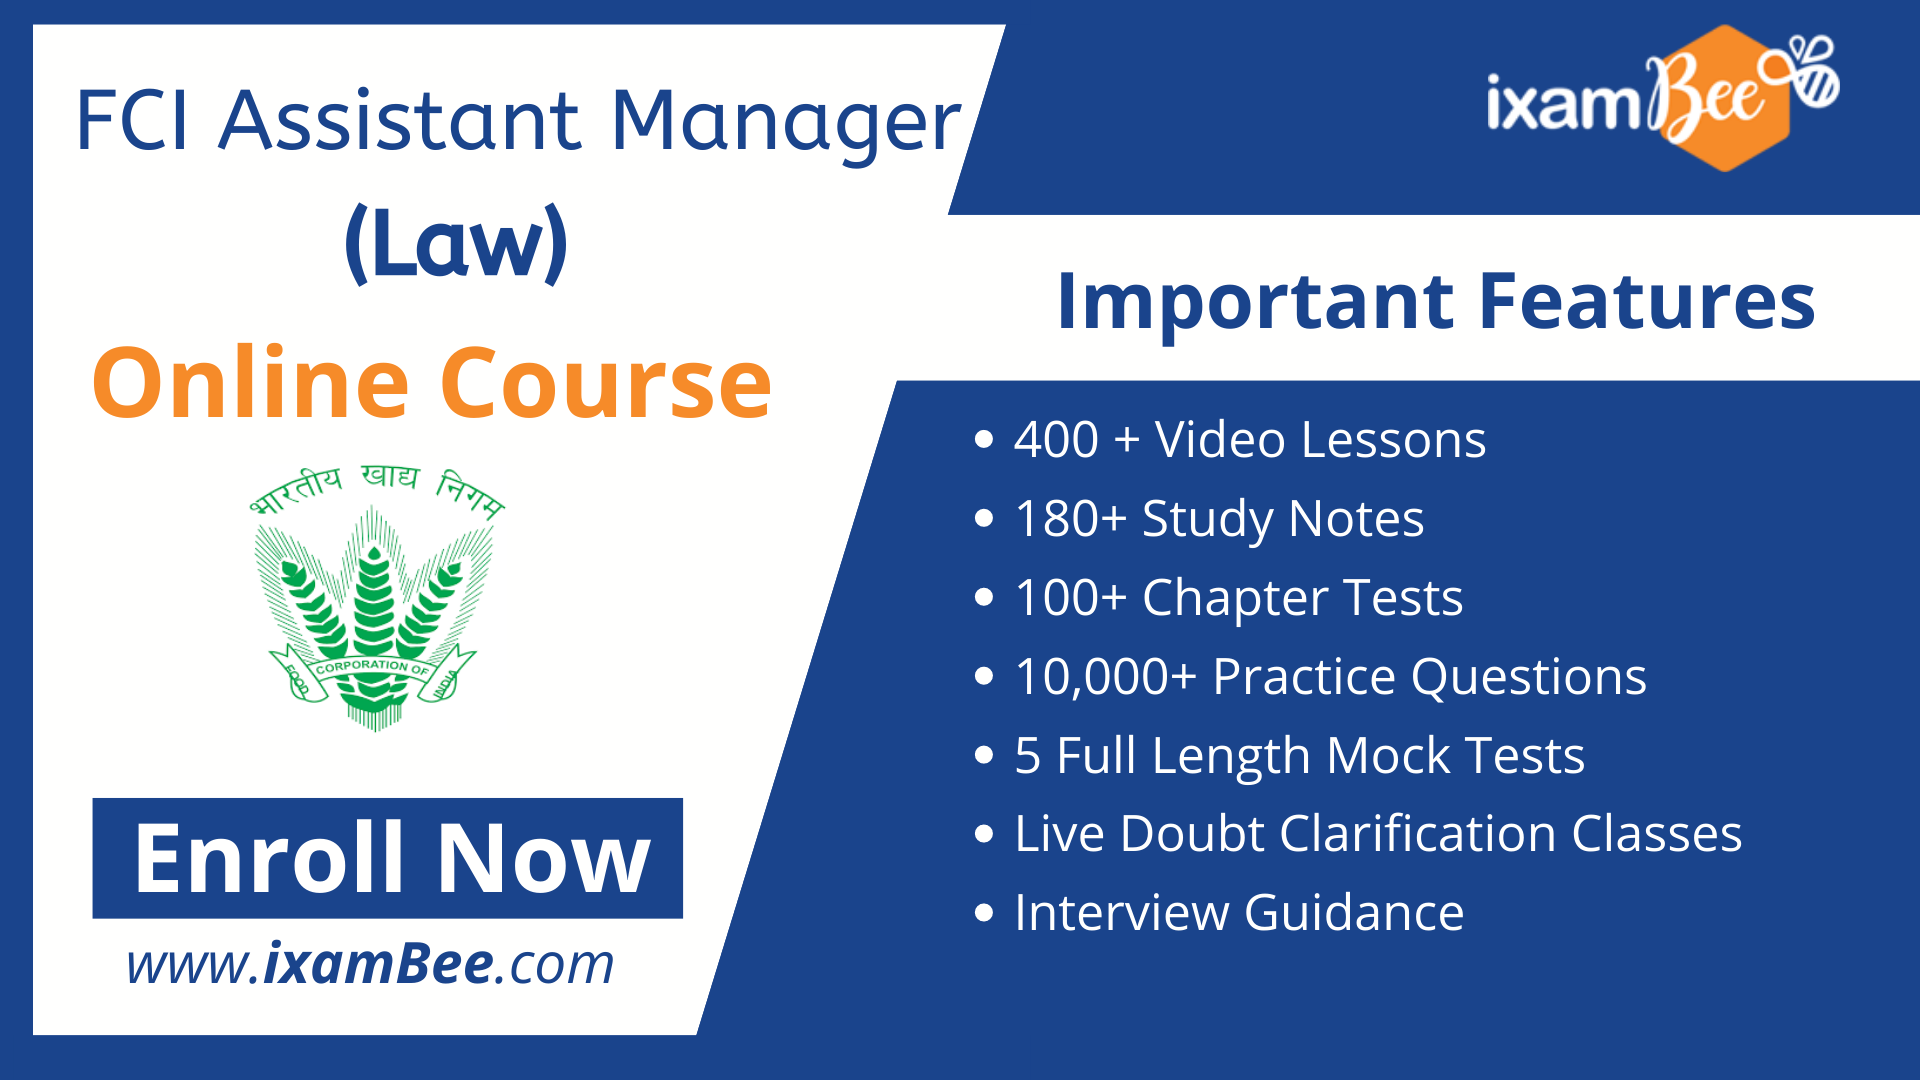 FCI Assistant General Manager (Law) online course